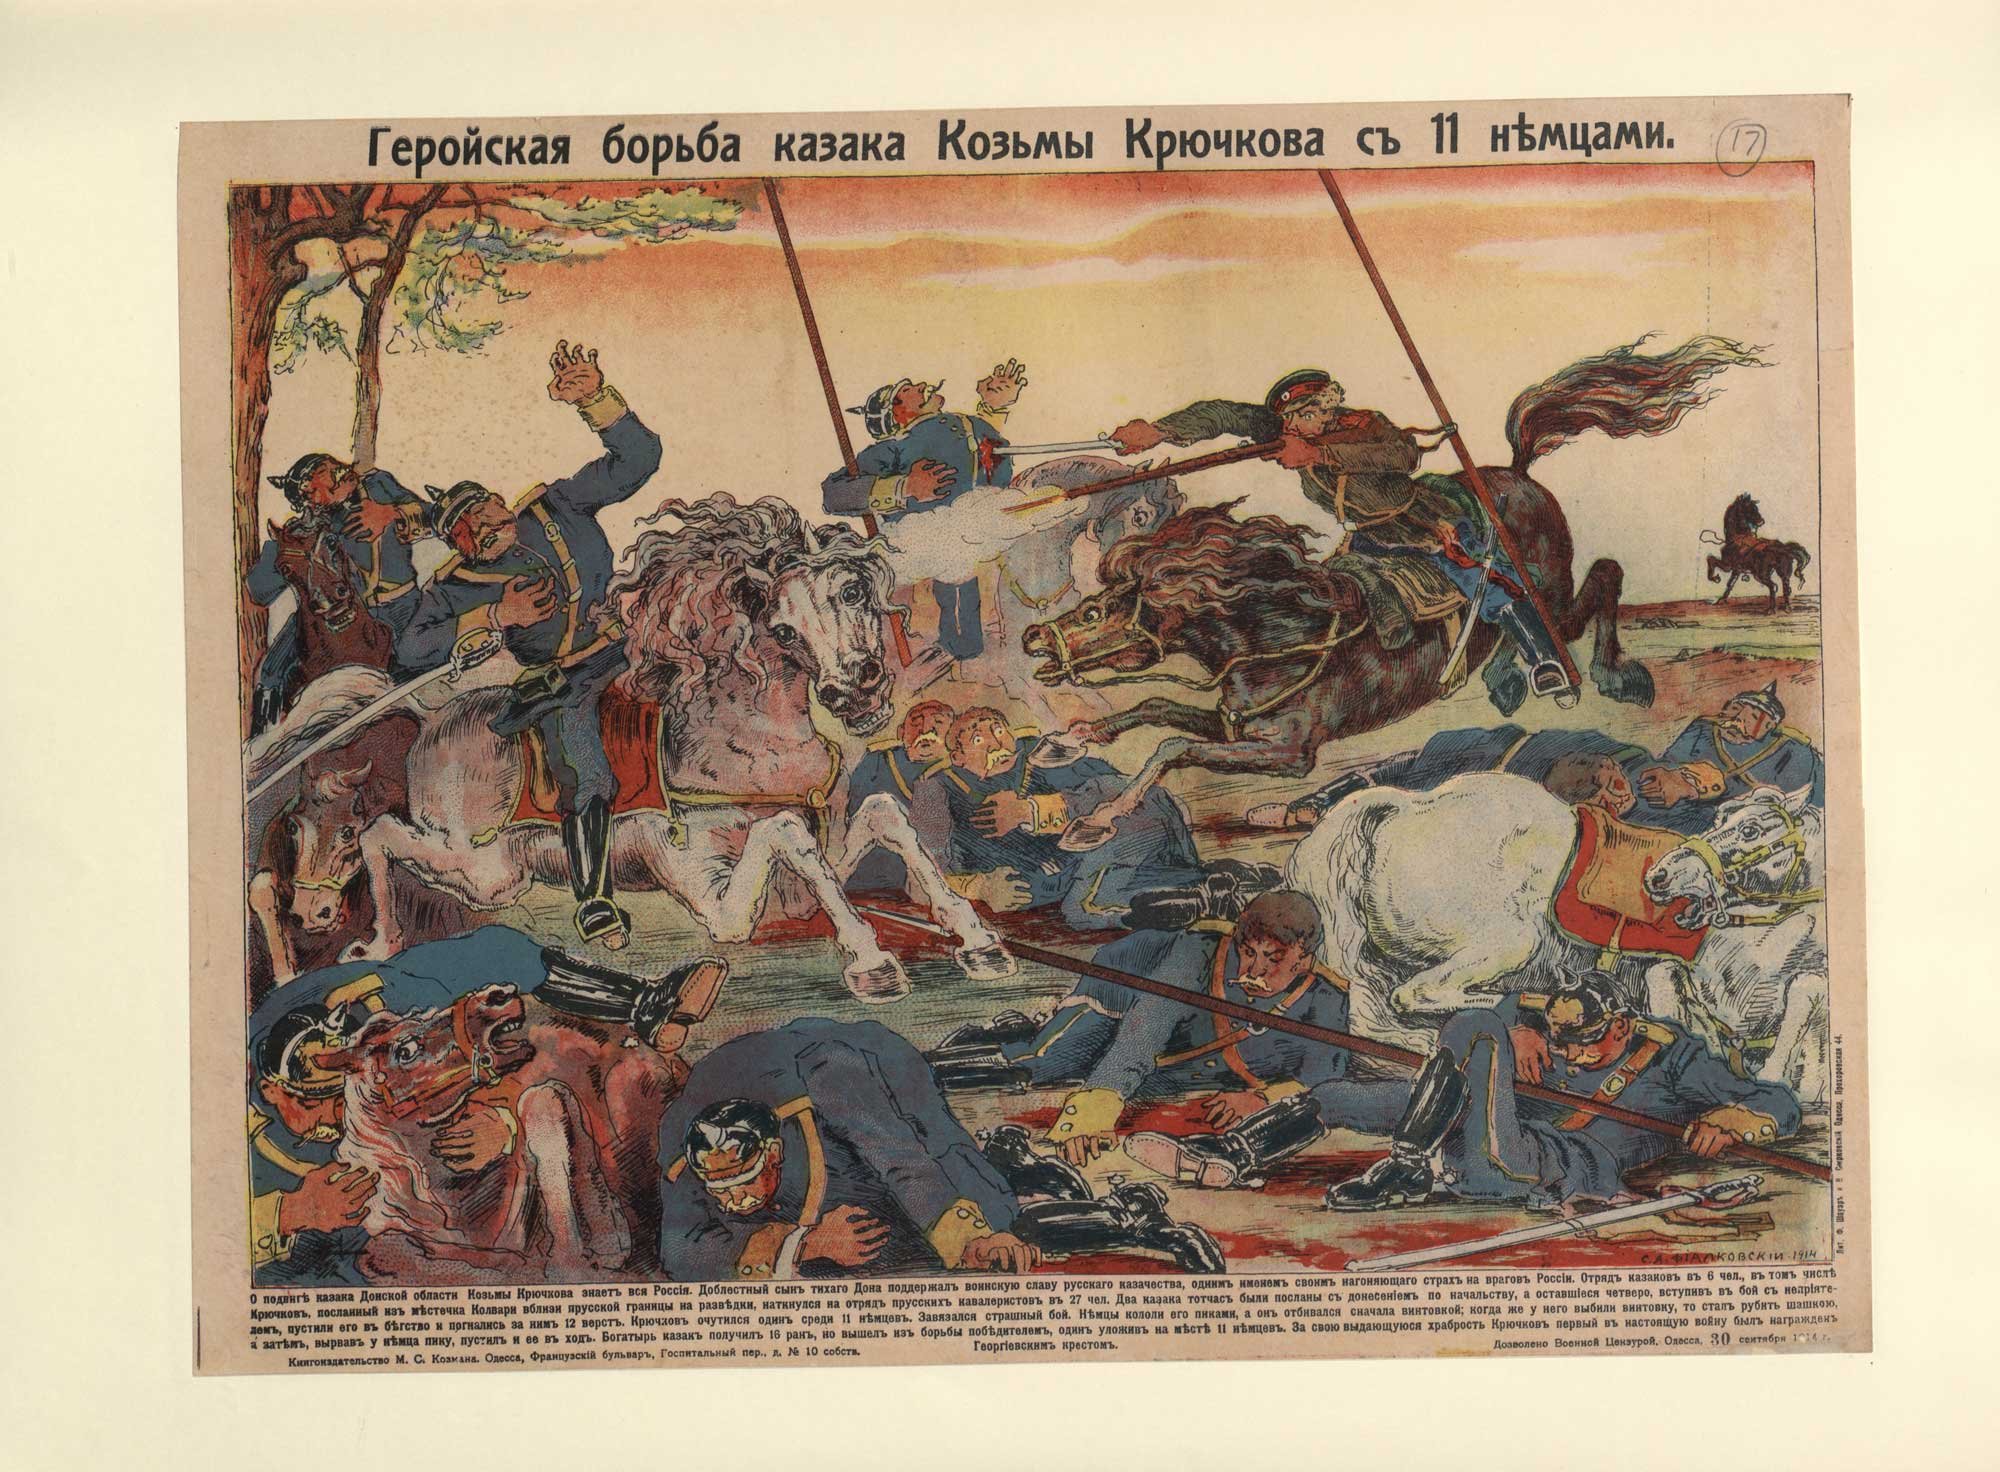 A heroic battle of the Cossack Kozma Kriuchkov with 11 Germans